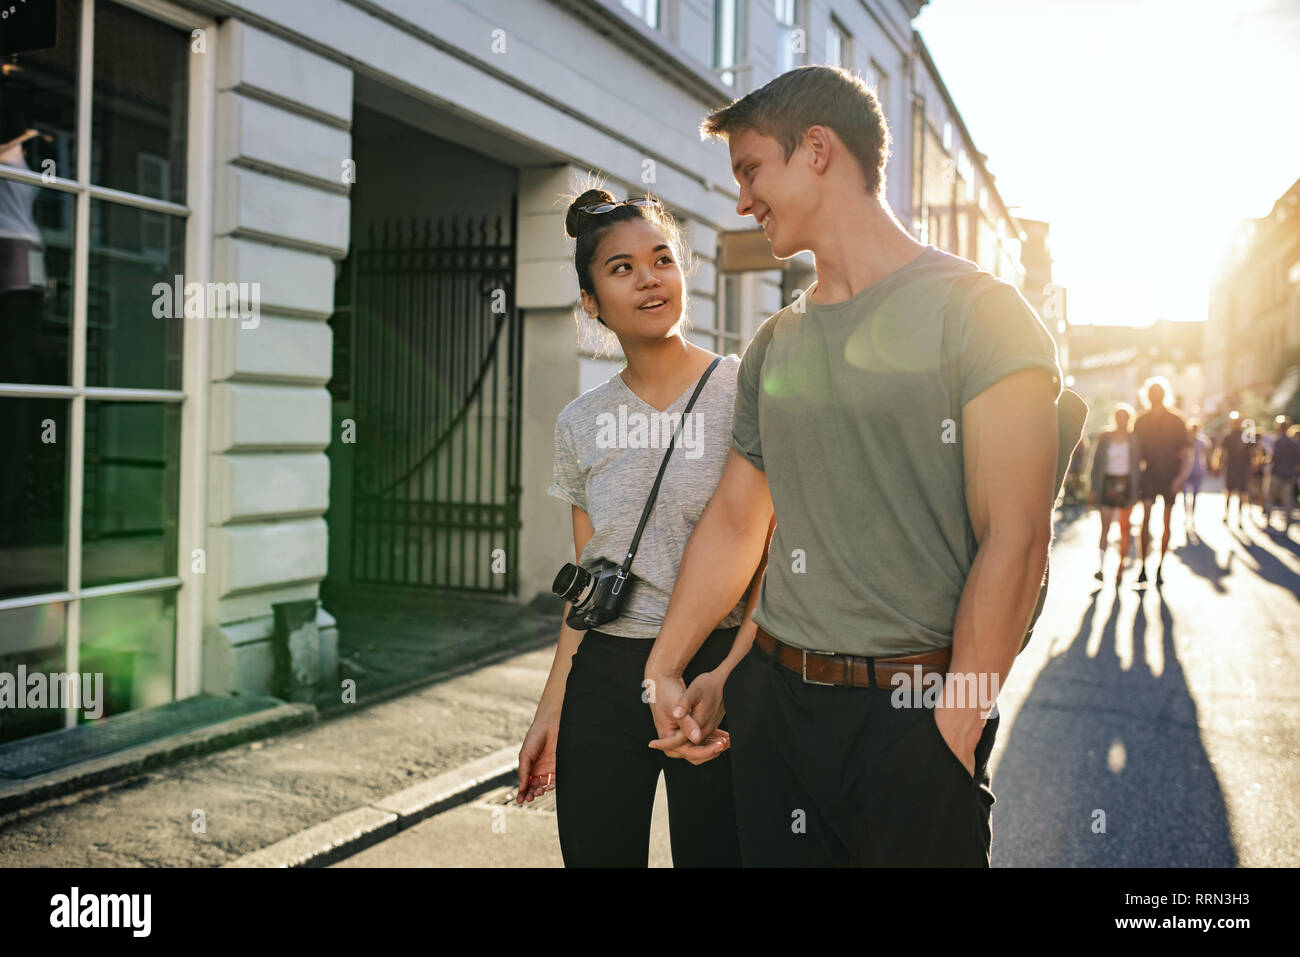 Smiling young couple exploring city streets together on foot - Stock Image